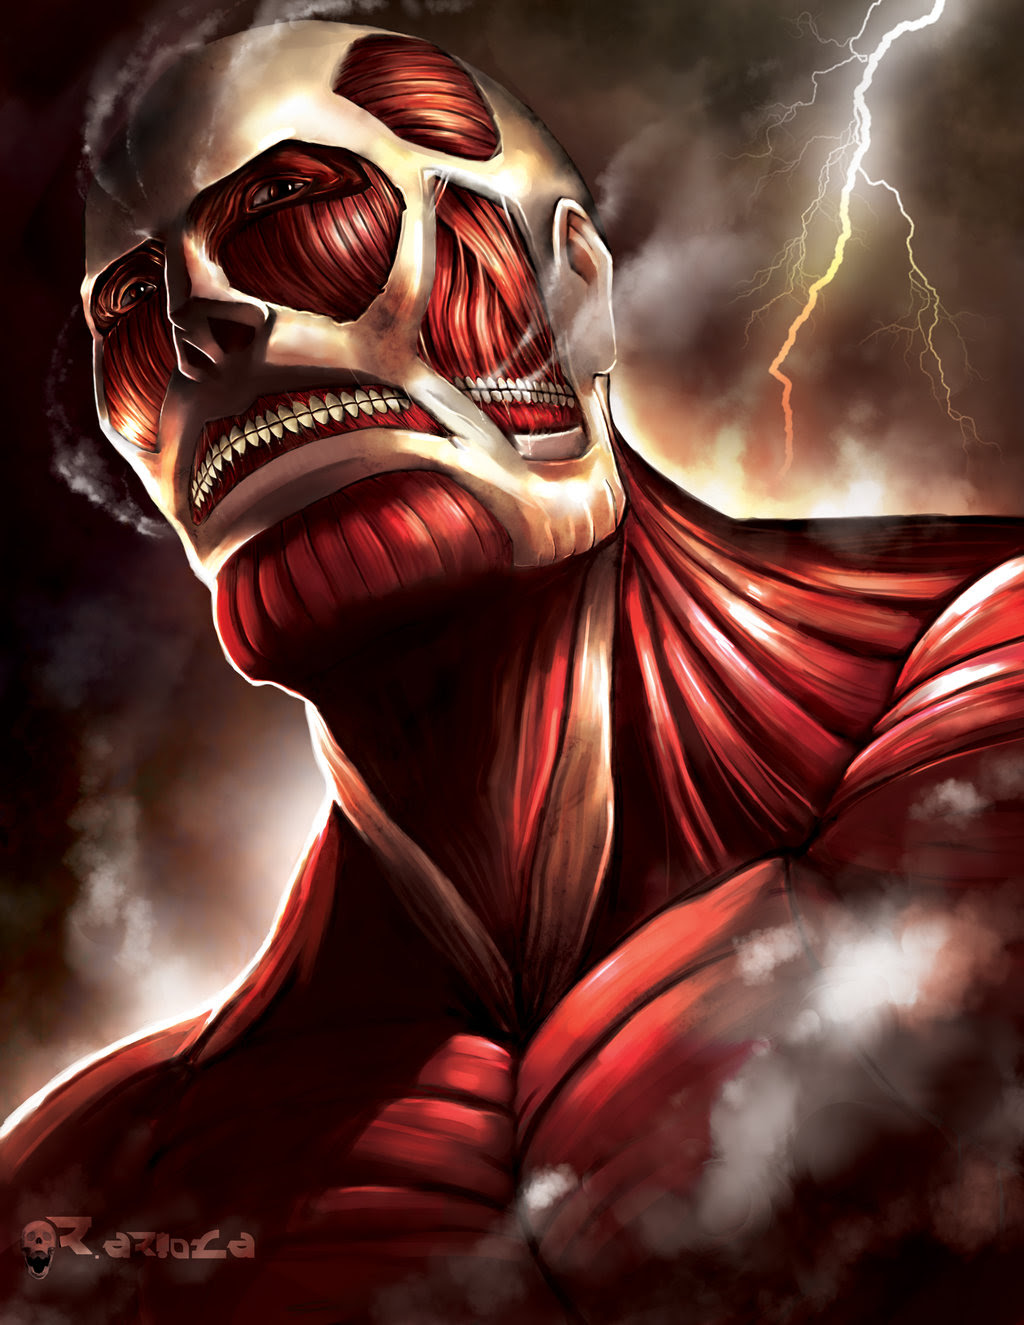 The Colossal Titan Shingeki No Kyojin Attack On Titan Fan Art 39173637 Fanpop